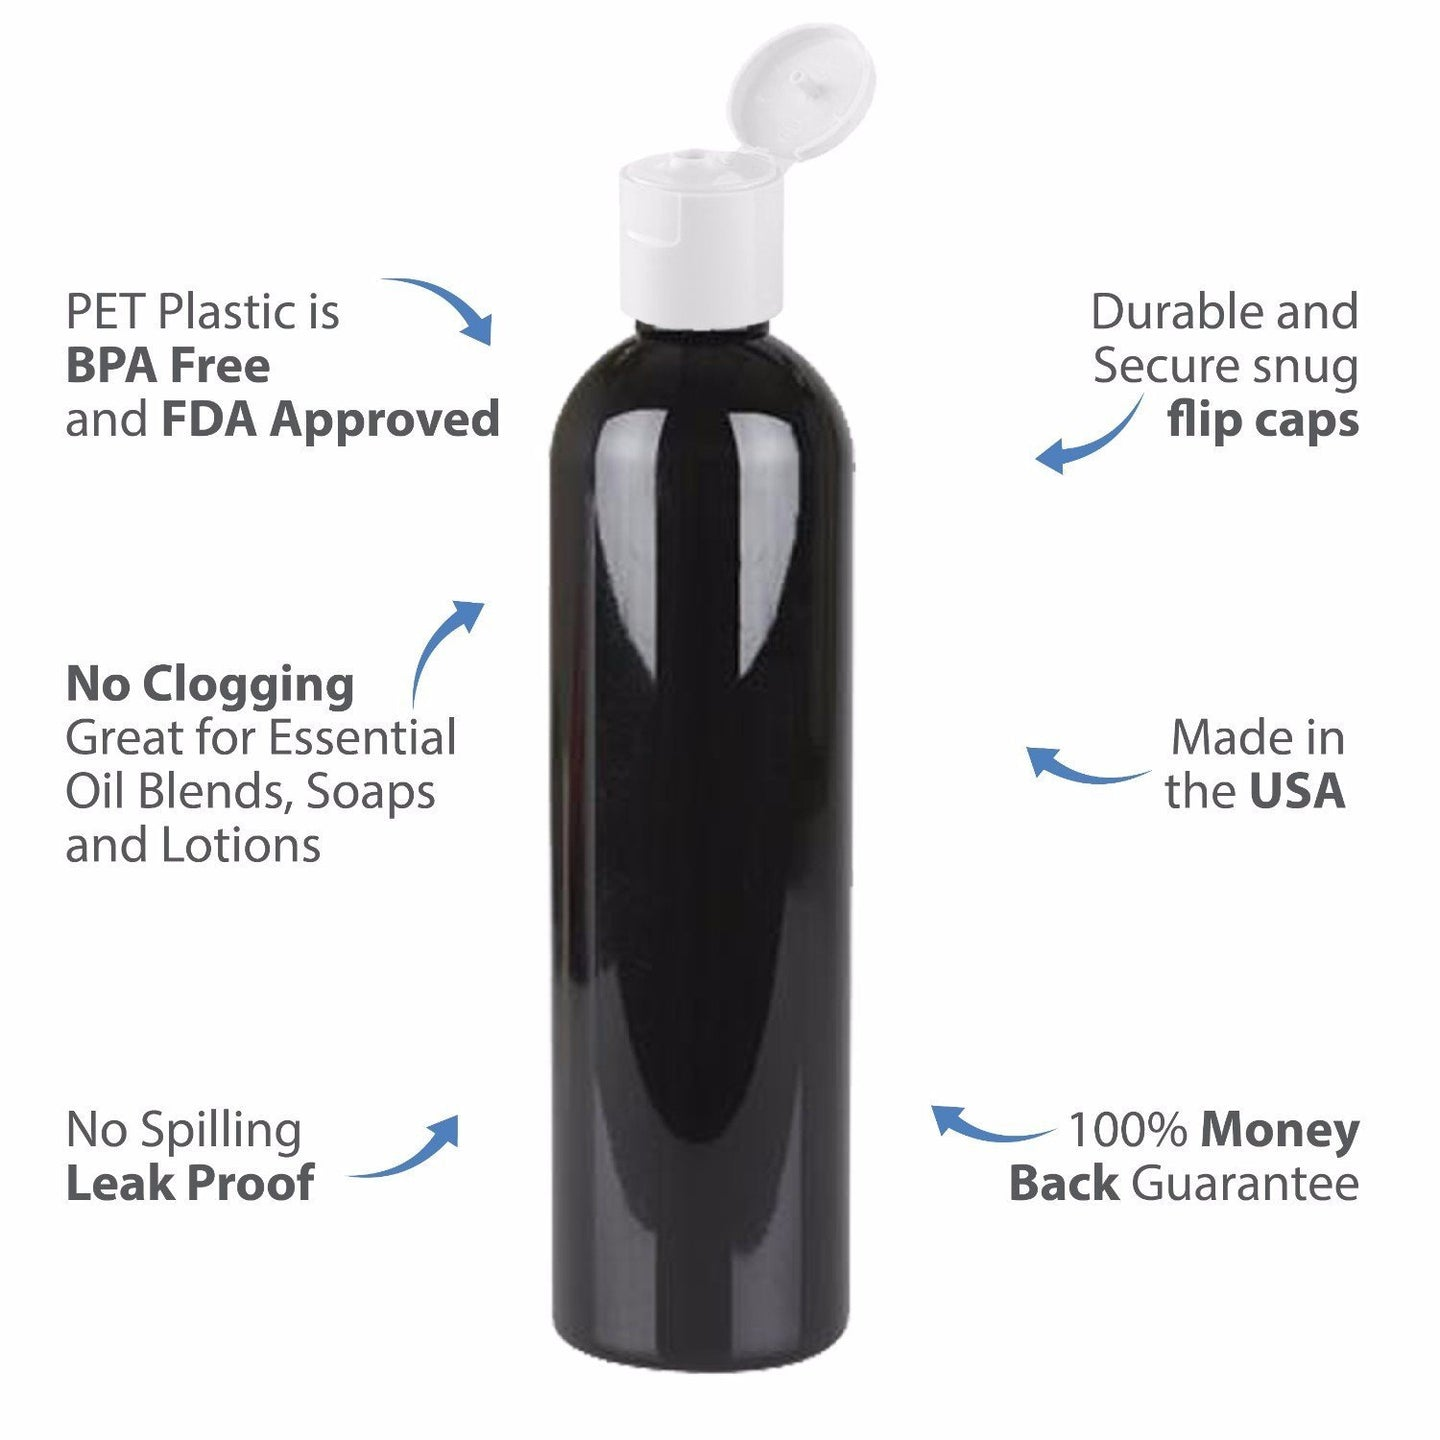 MoYo Natural Labs 8 oz Travel Bottles, Empty Travel Containers with Flip Caps, BPA Free PET Plastic Squeezable Toiletry/Cosmetic Bottles (3 pack, Black)